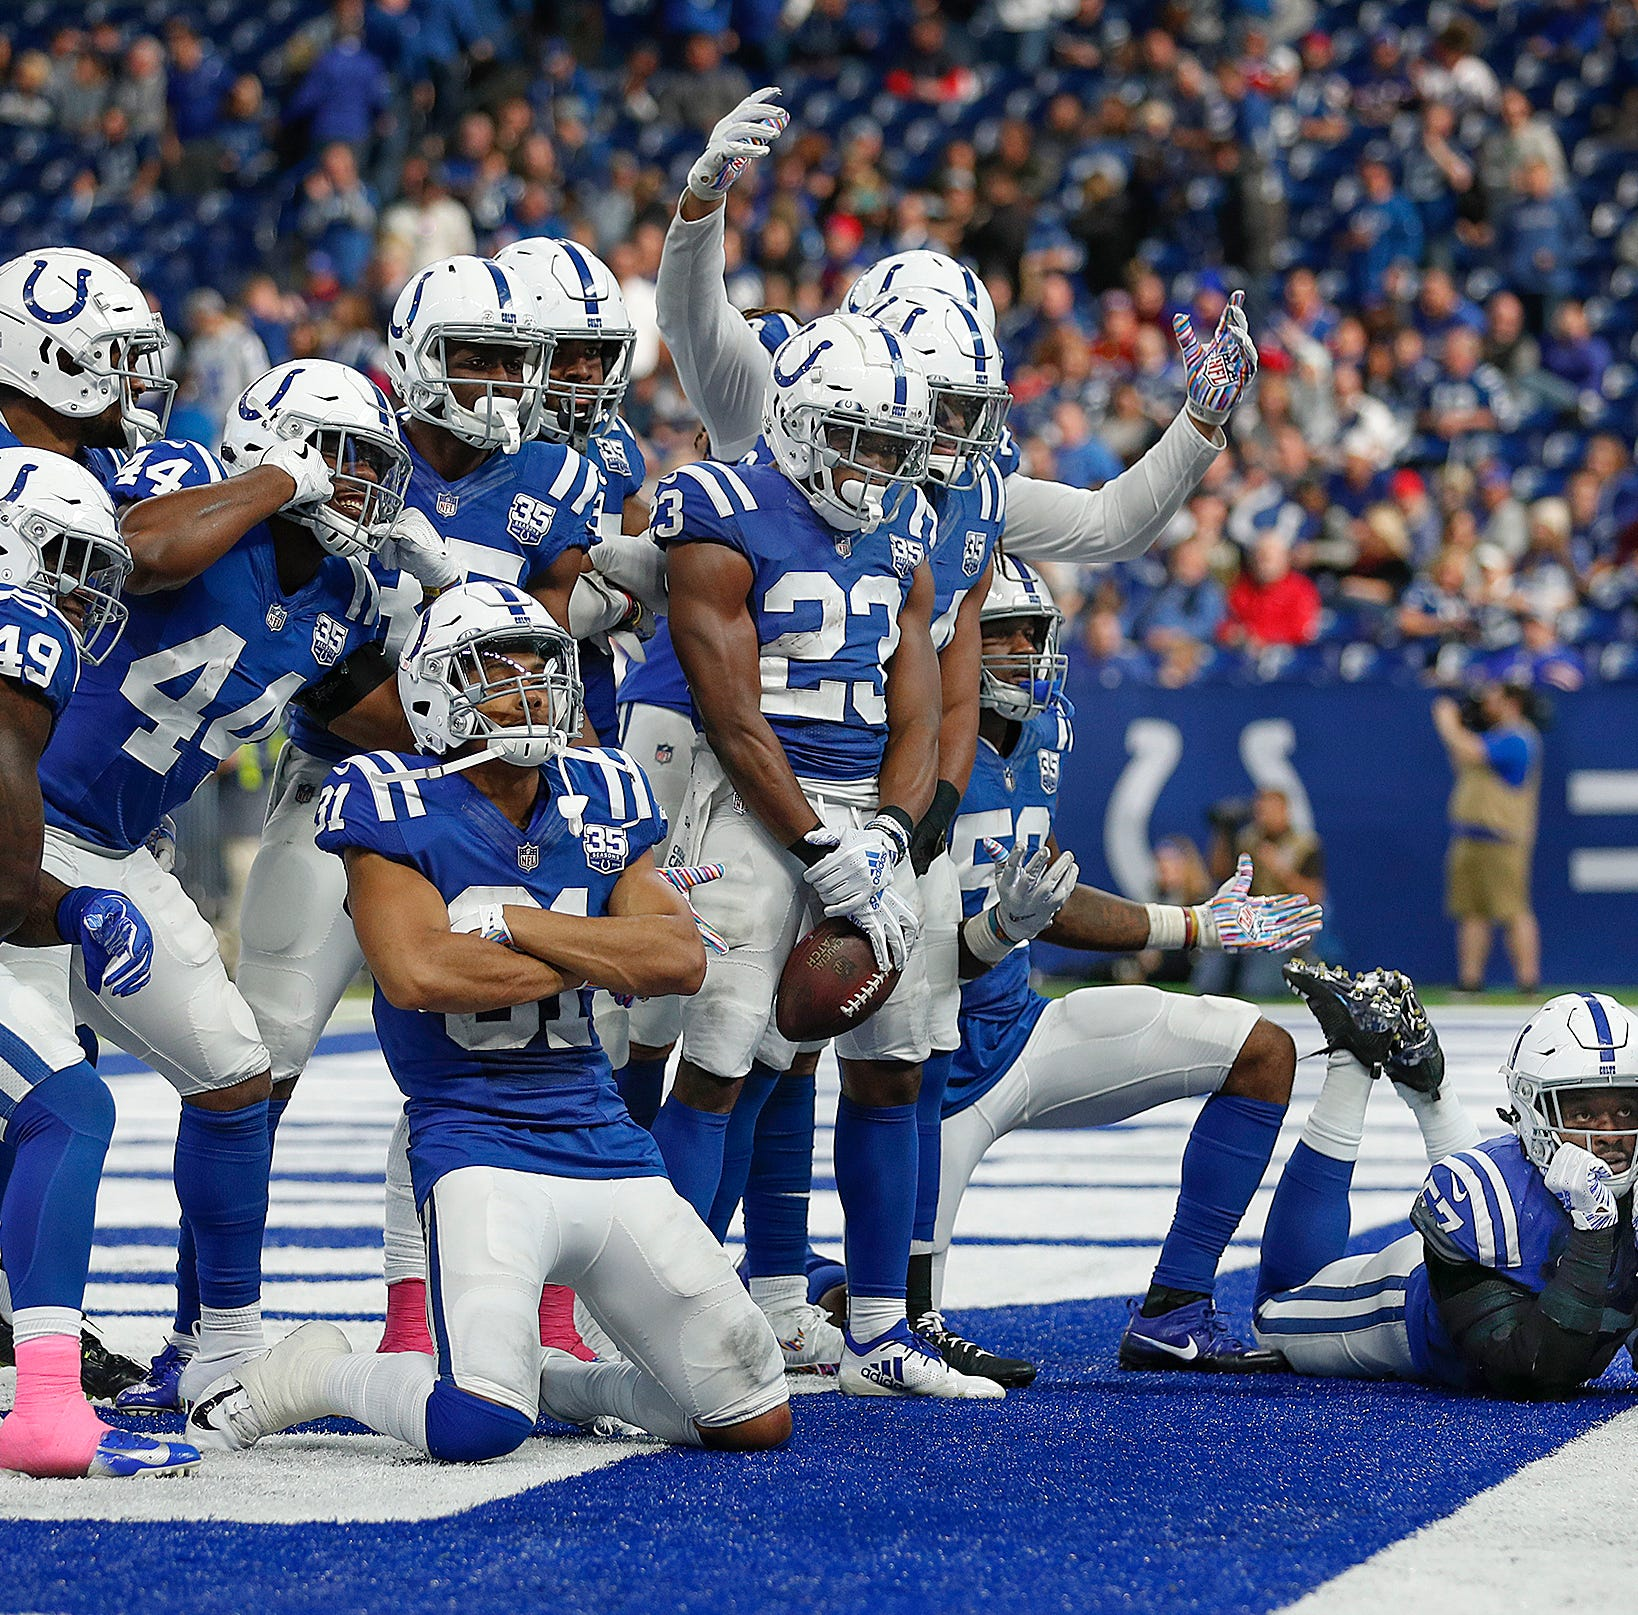 Colts throttle Bills to get win No. 2